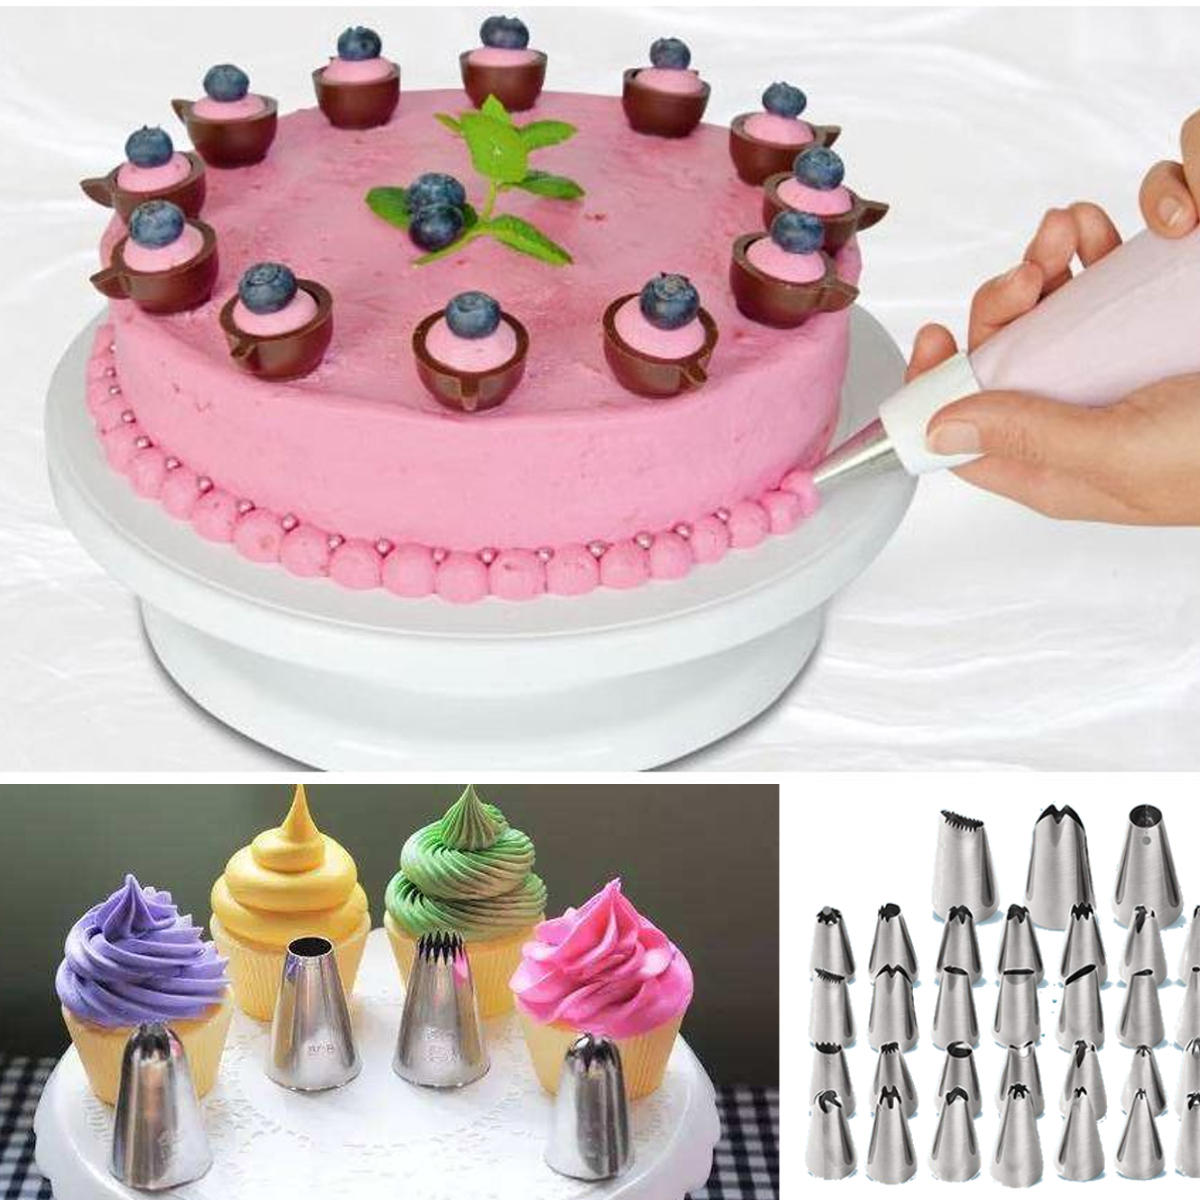 KCASA KC-PN15 7pc/set Silicone Icing Piping Nozzle Cream Pastry Bag Stainless Steel Nozzle Sets Cake DIY Decorating Baking Tool - 11